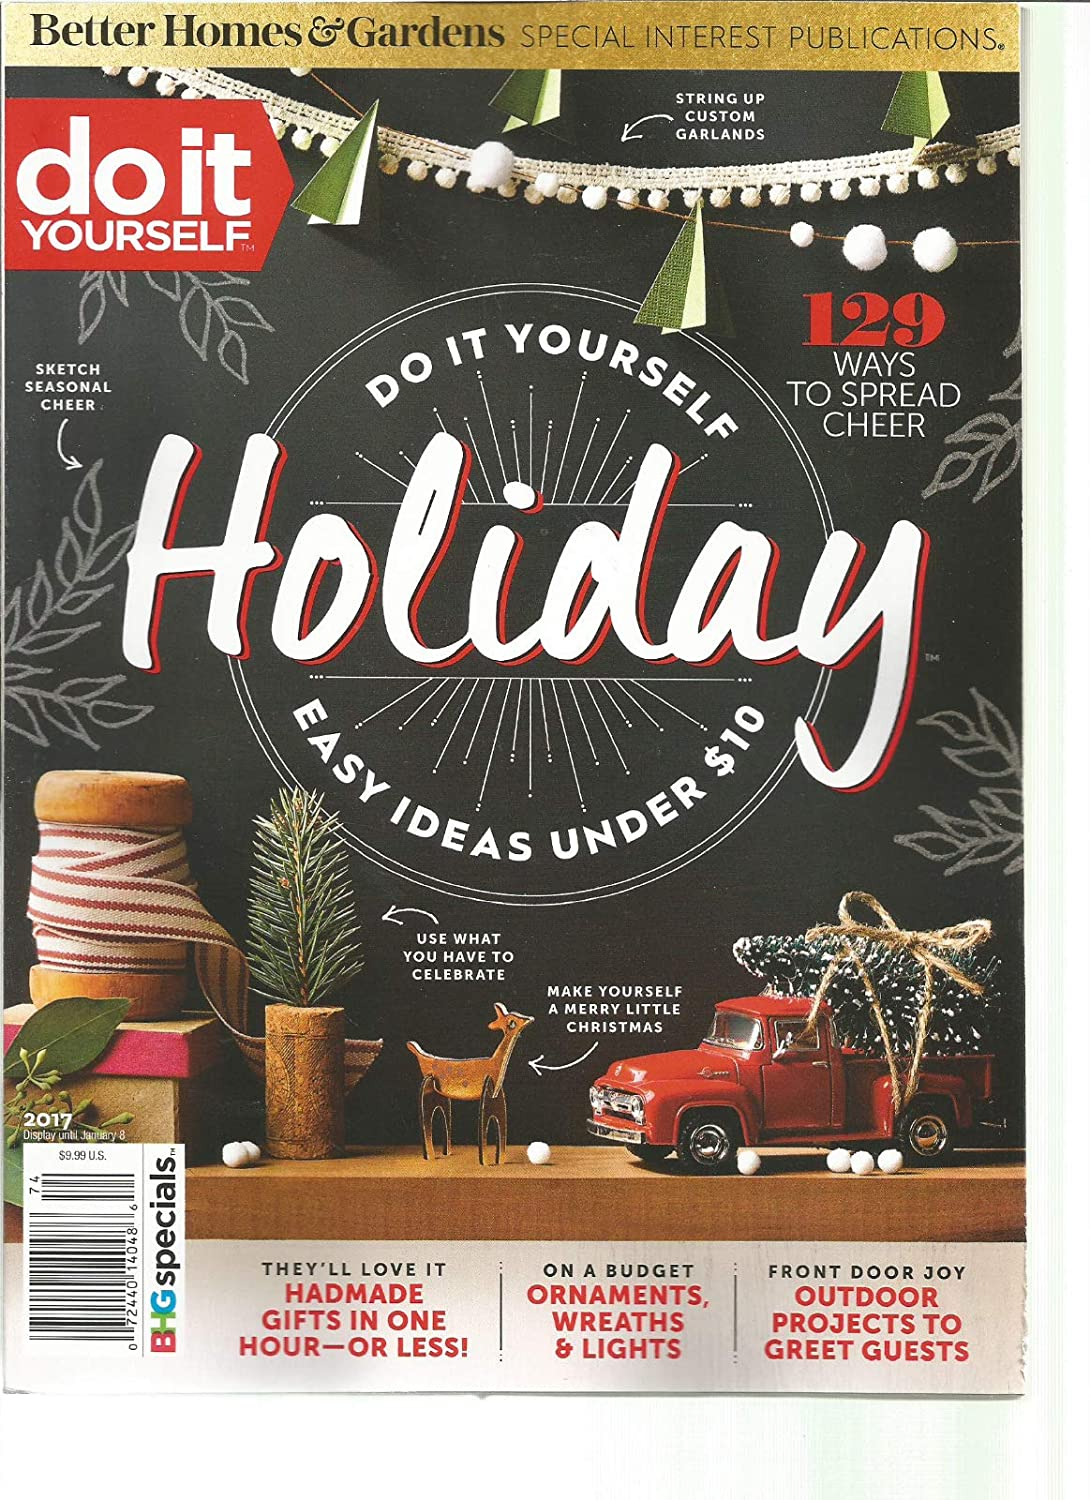 Better Homes and Gardens do it YOURSELF Magazine HOLIDAY 2017.